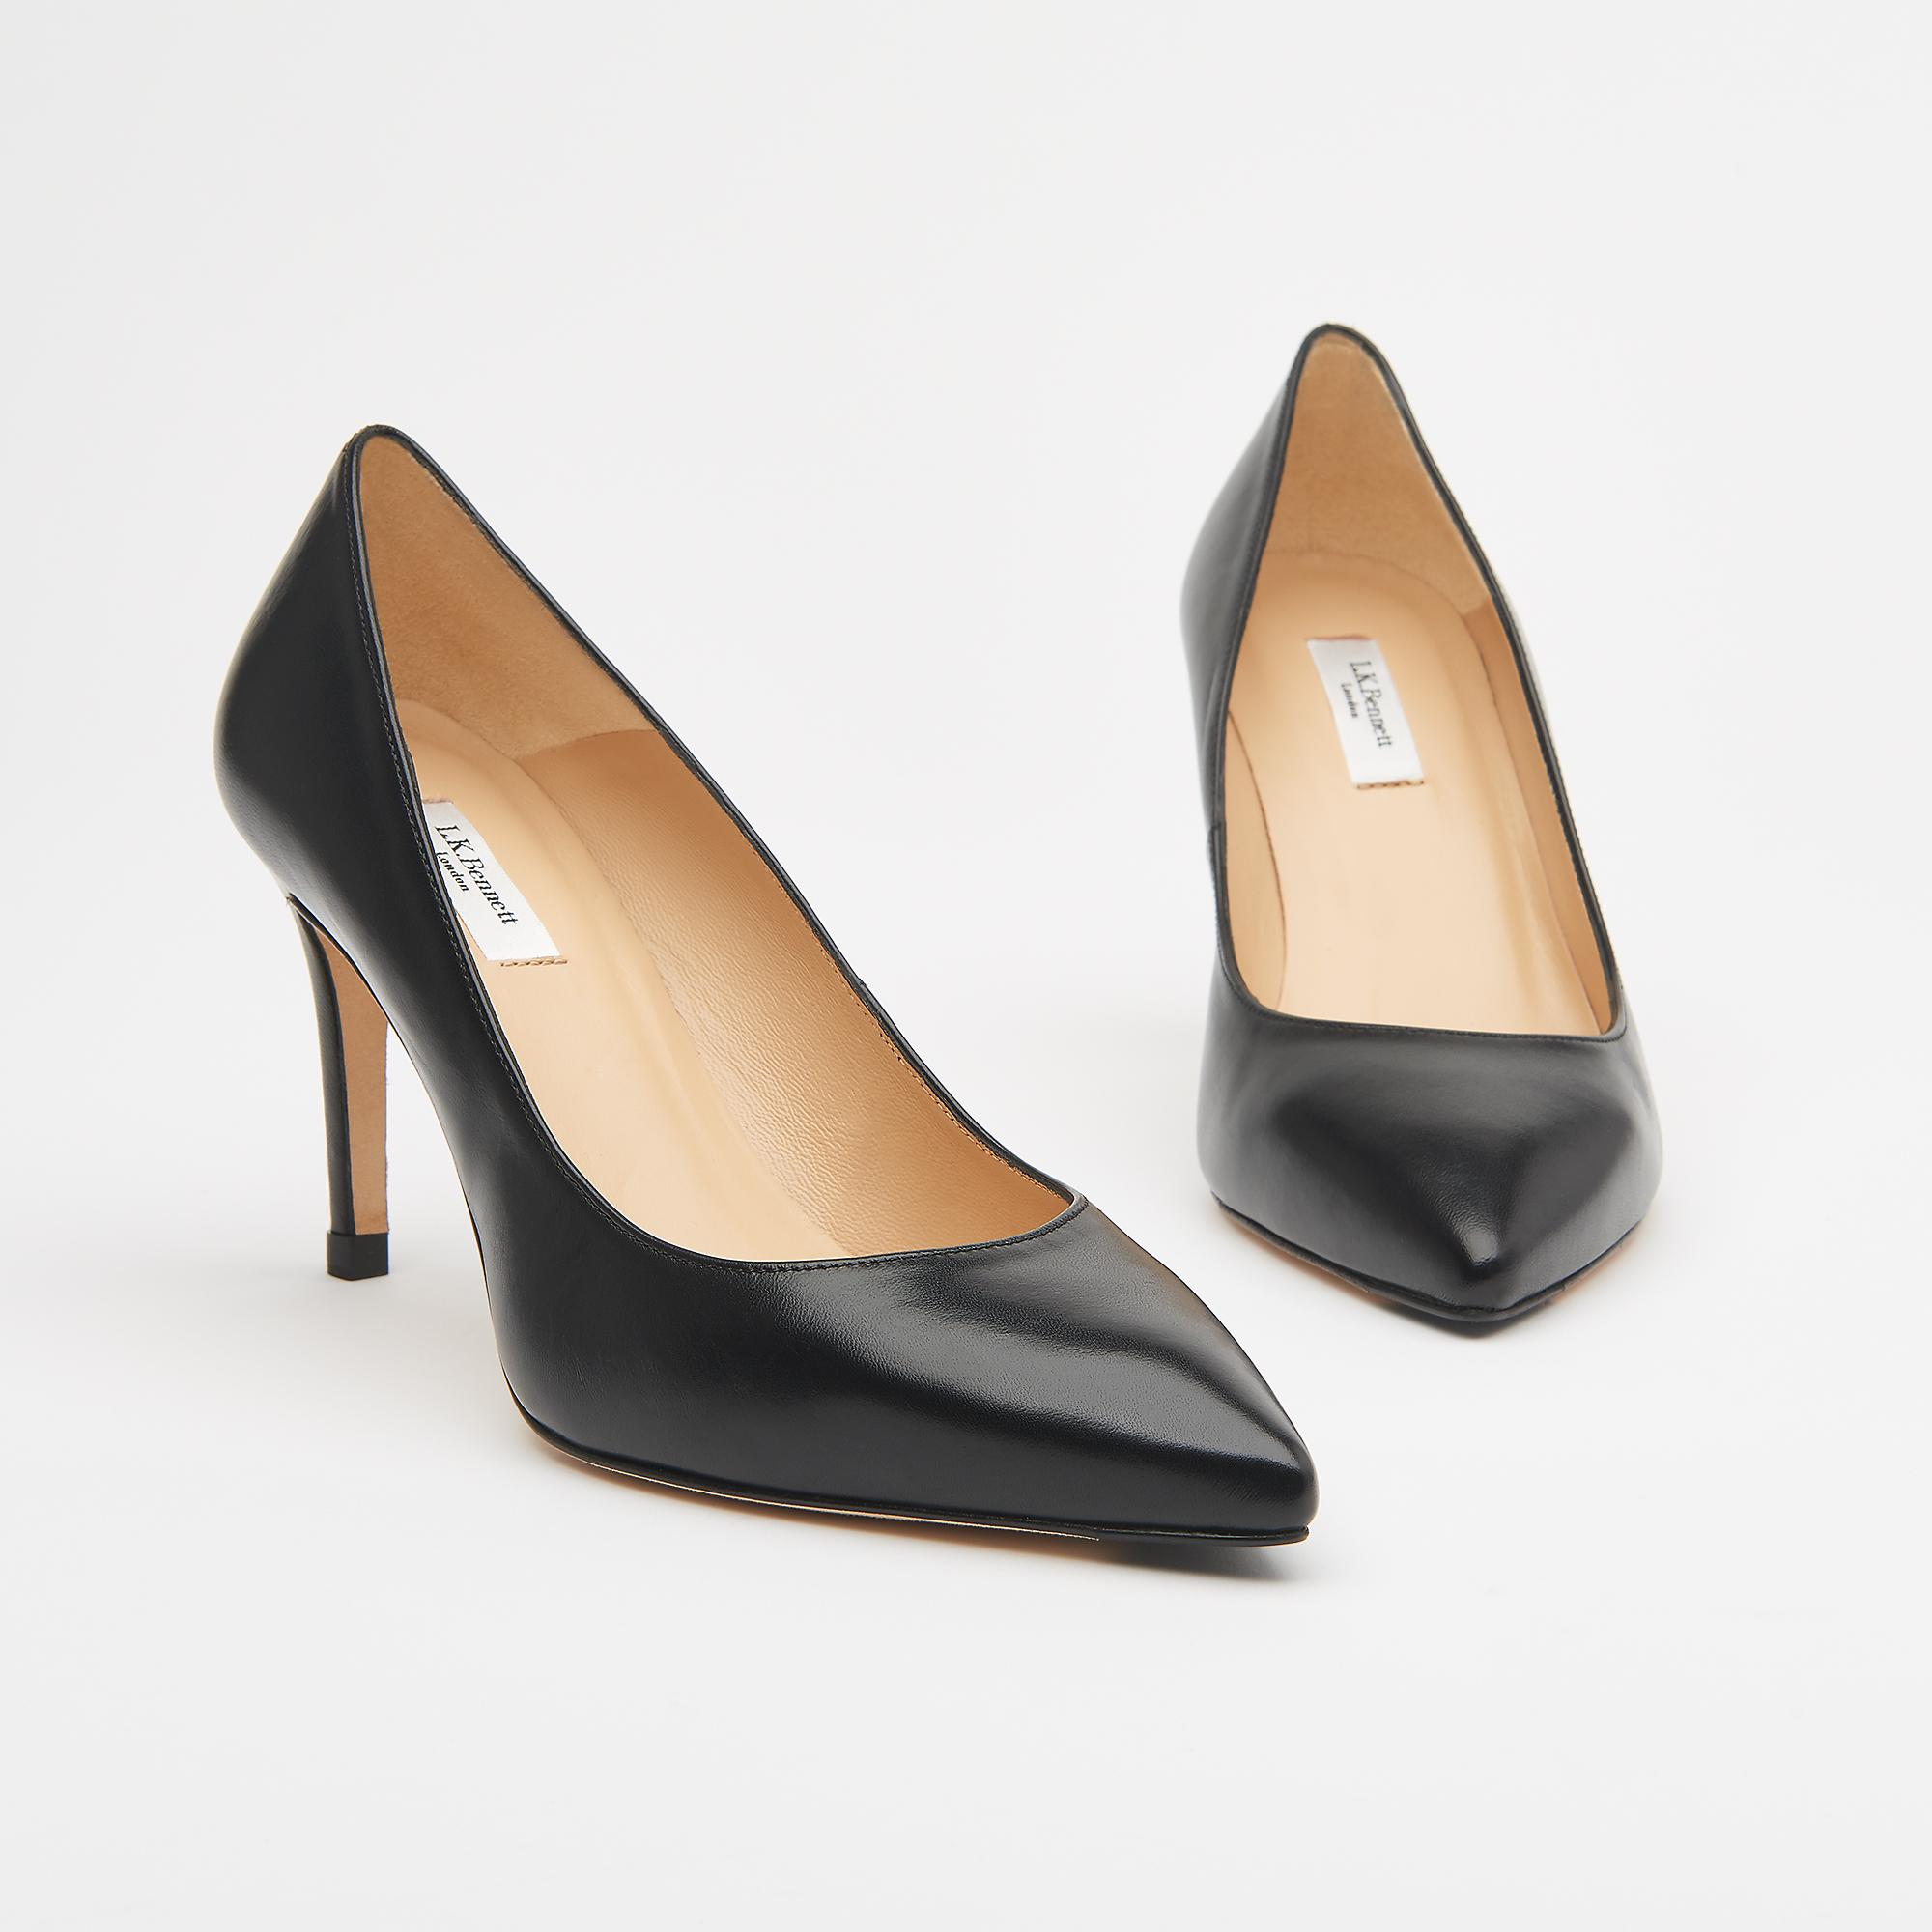 80709874697 Floret Black Leather Pointed Toe Courts | Shoes | L.K.Bennett